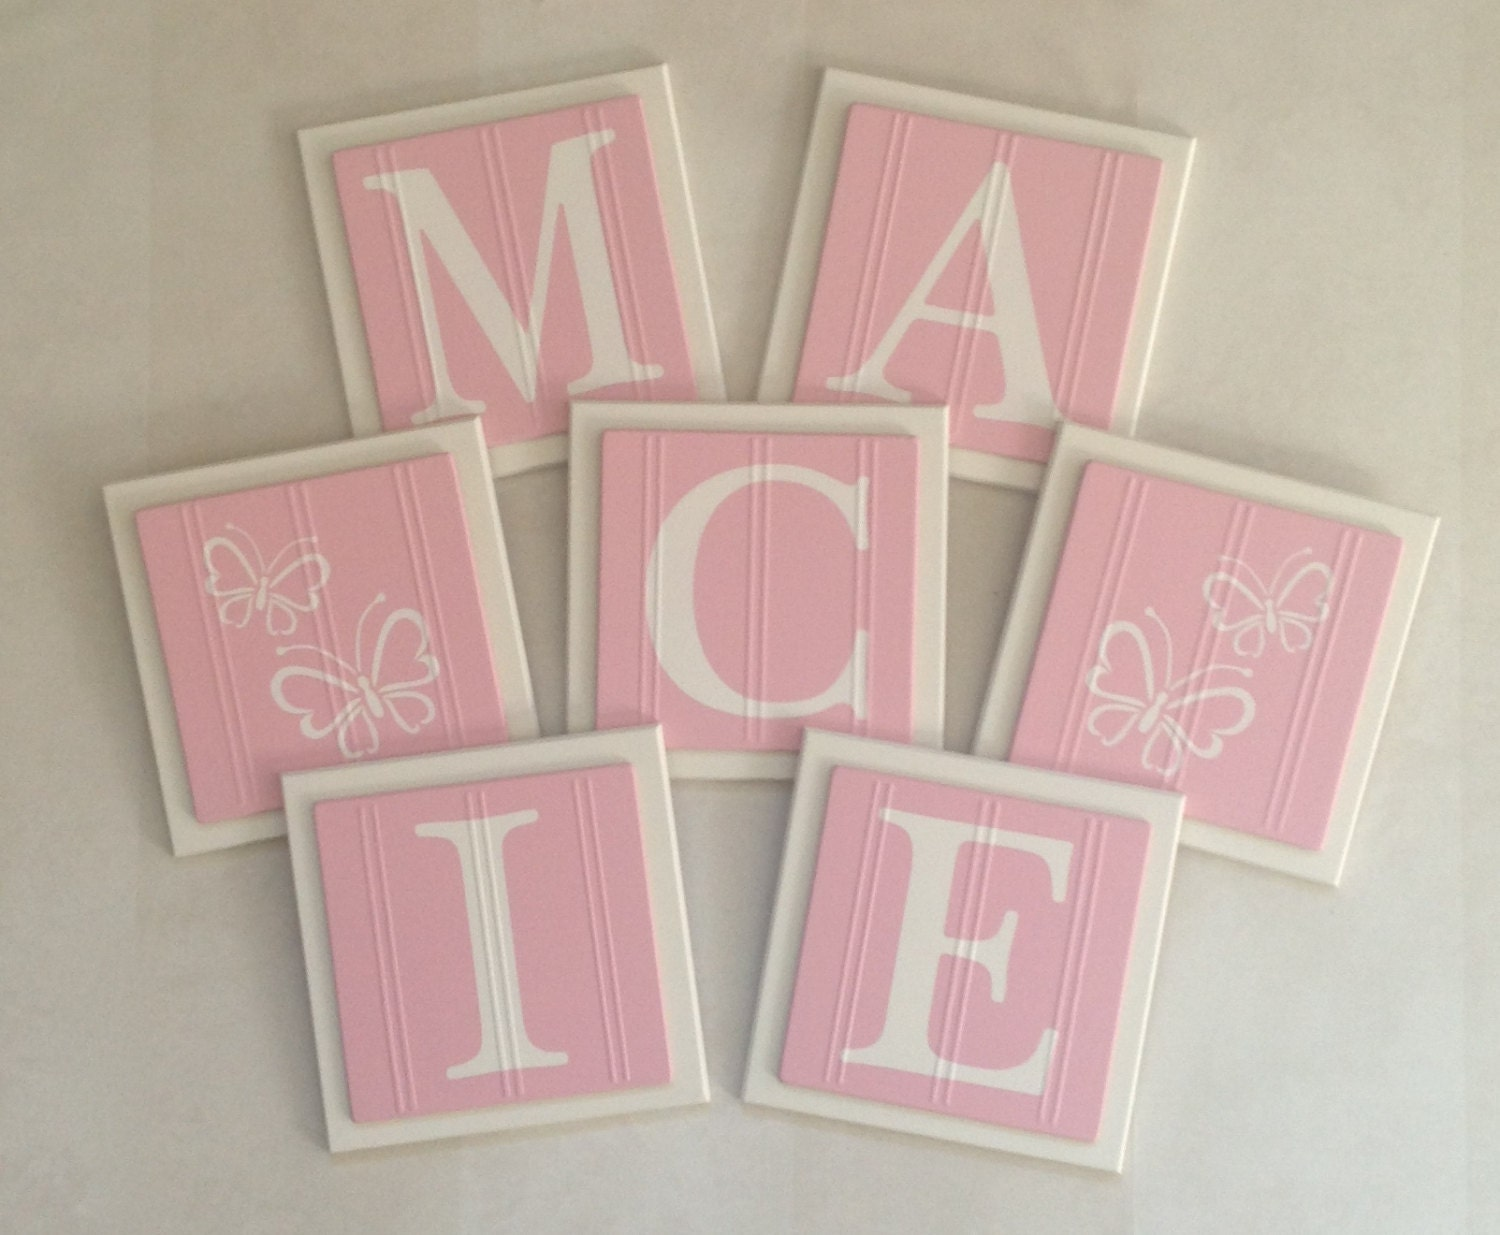 Wall Decor Block Letters : Pink baby name blocks wall letters room decor by